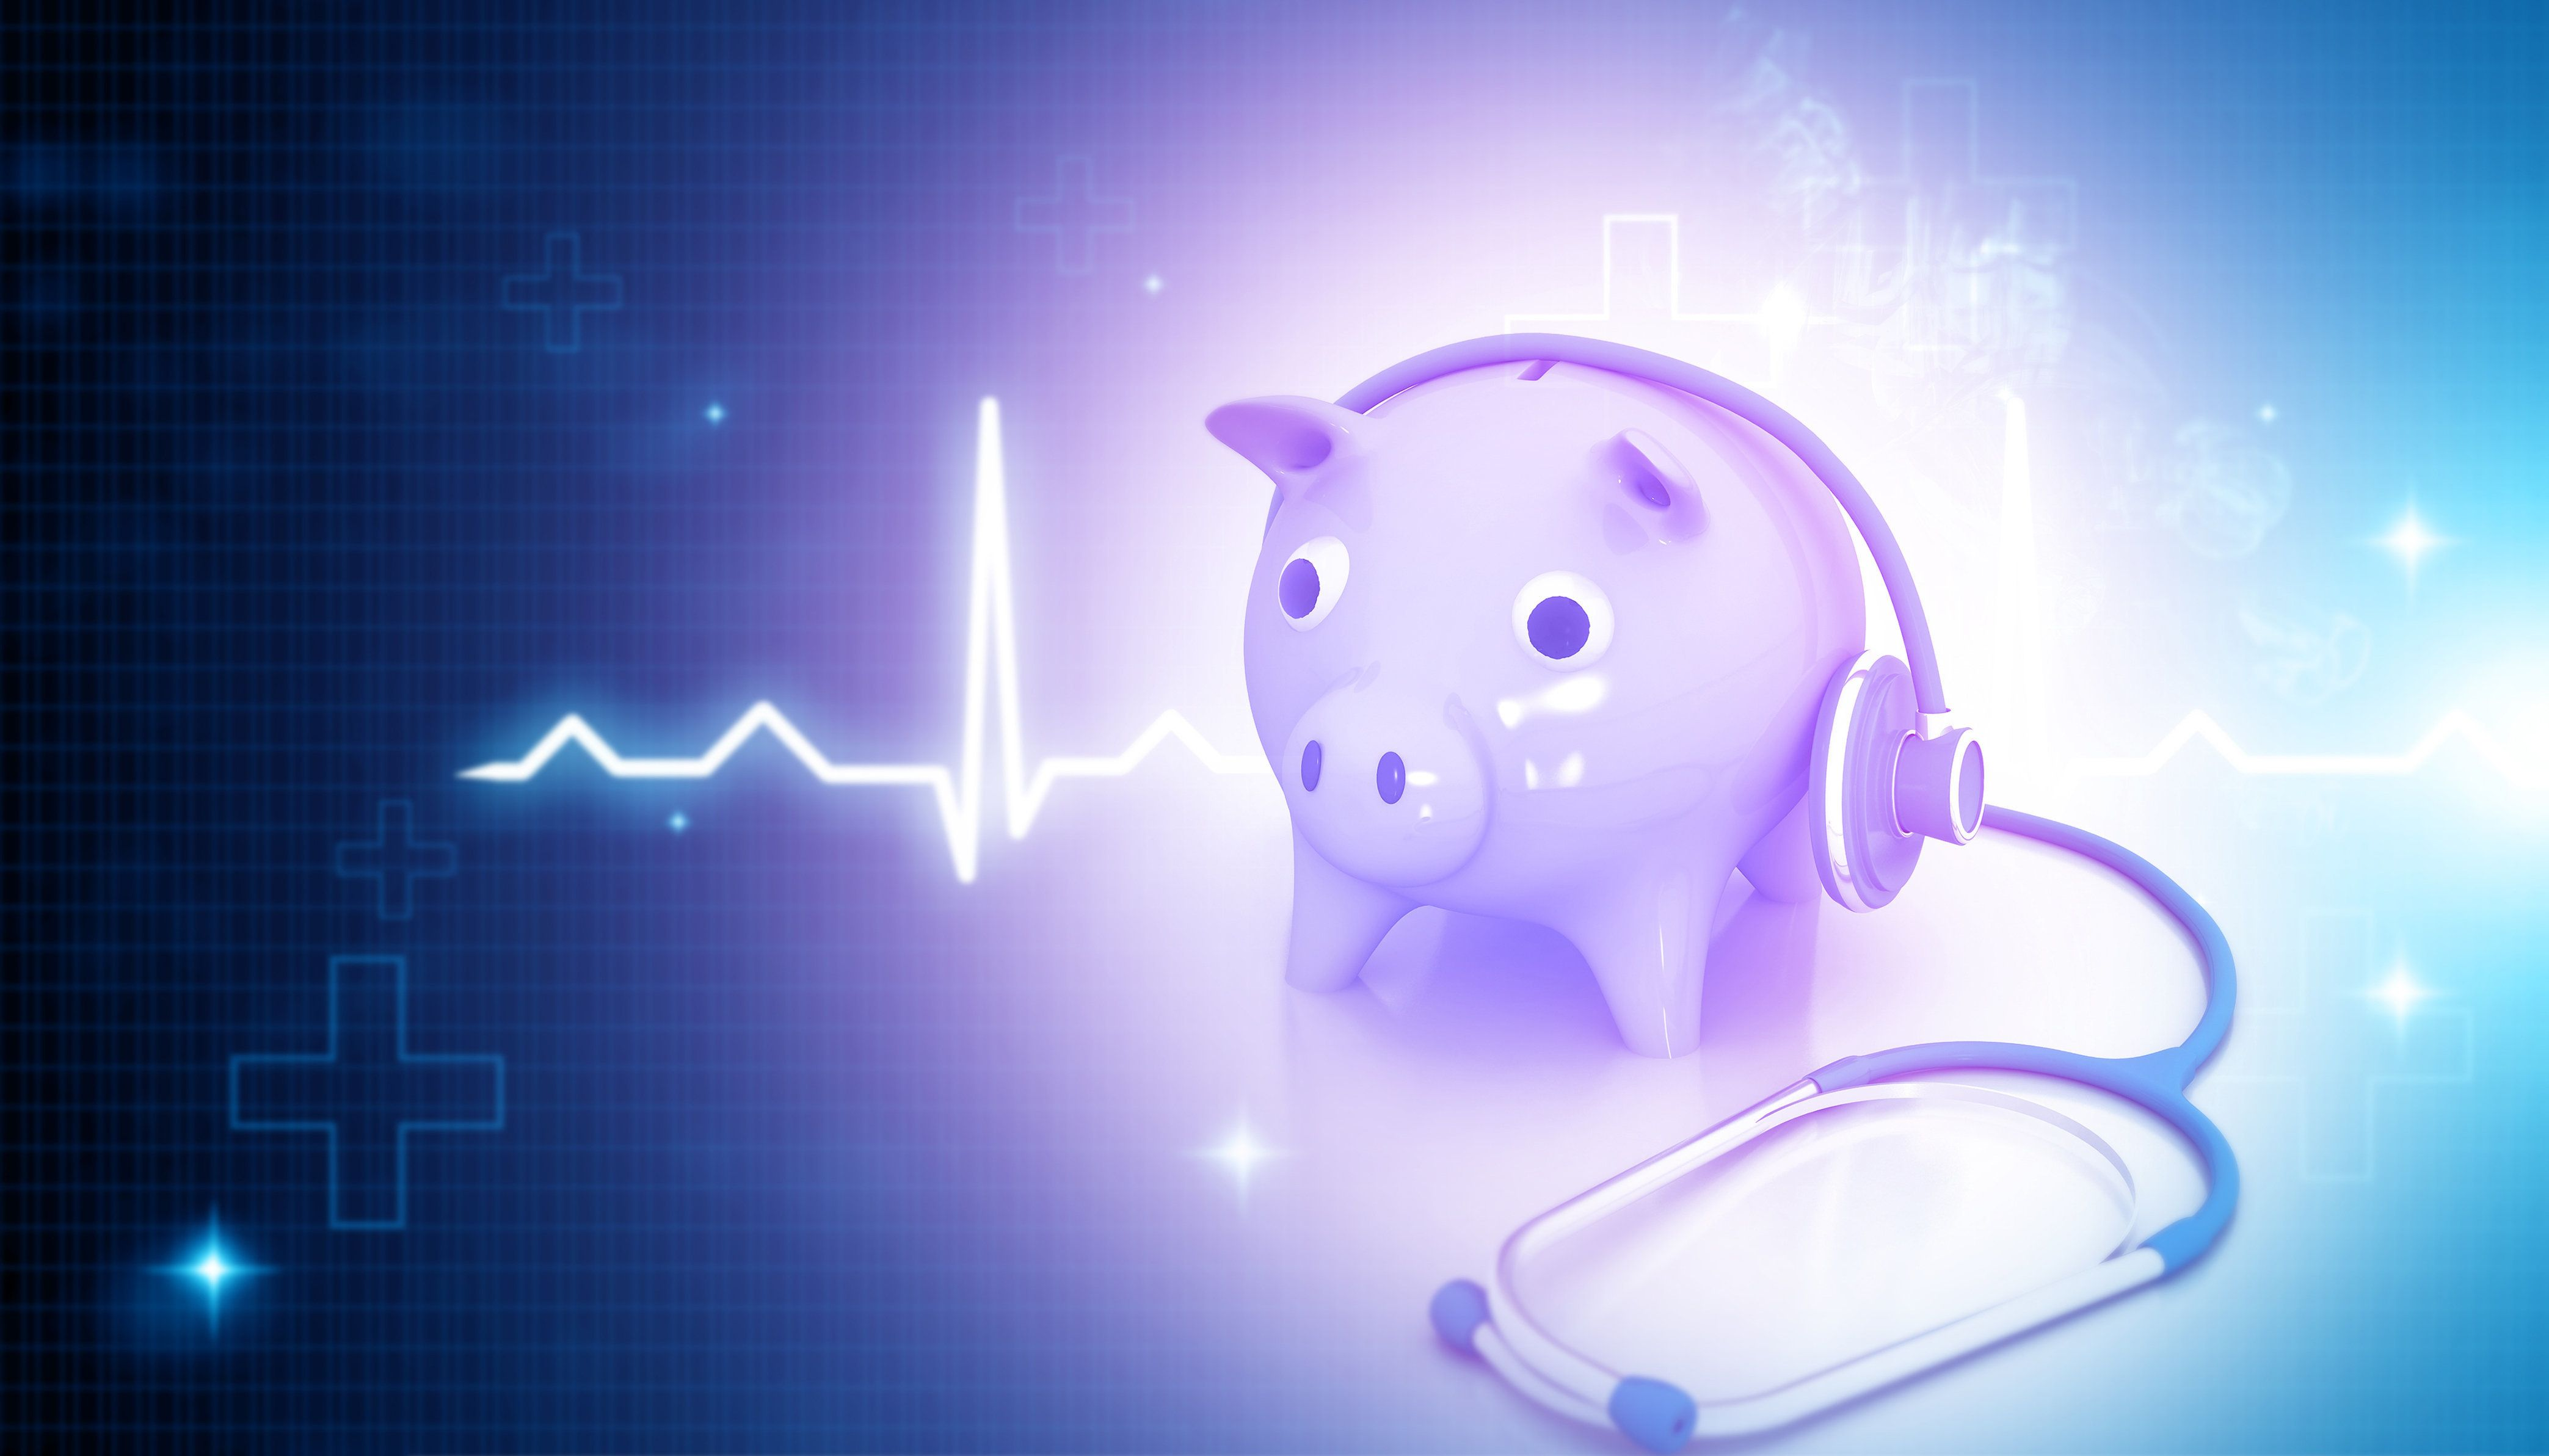 stethoscope with piggy bank on blue medical background. 3d illustration